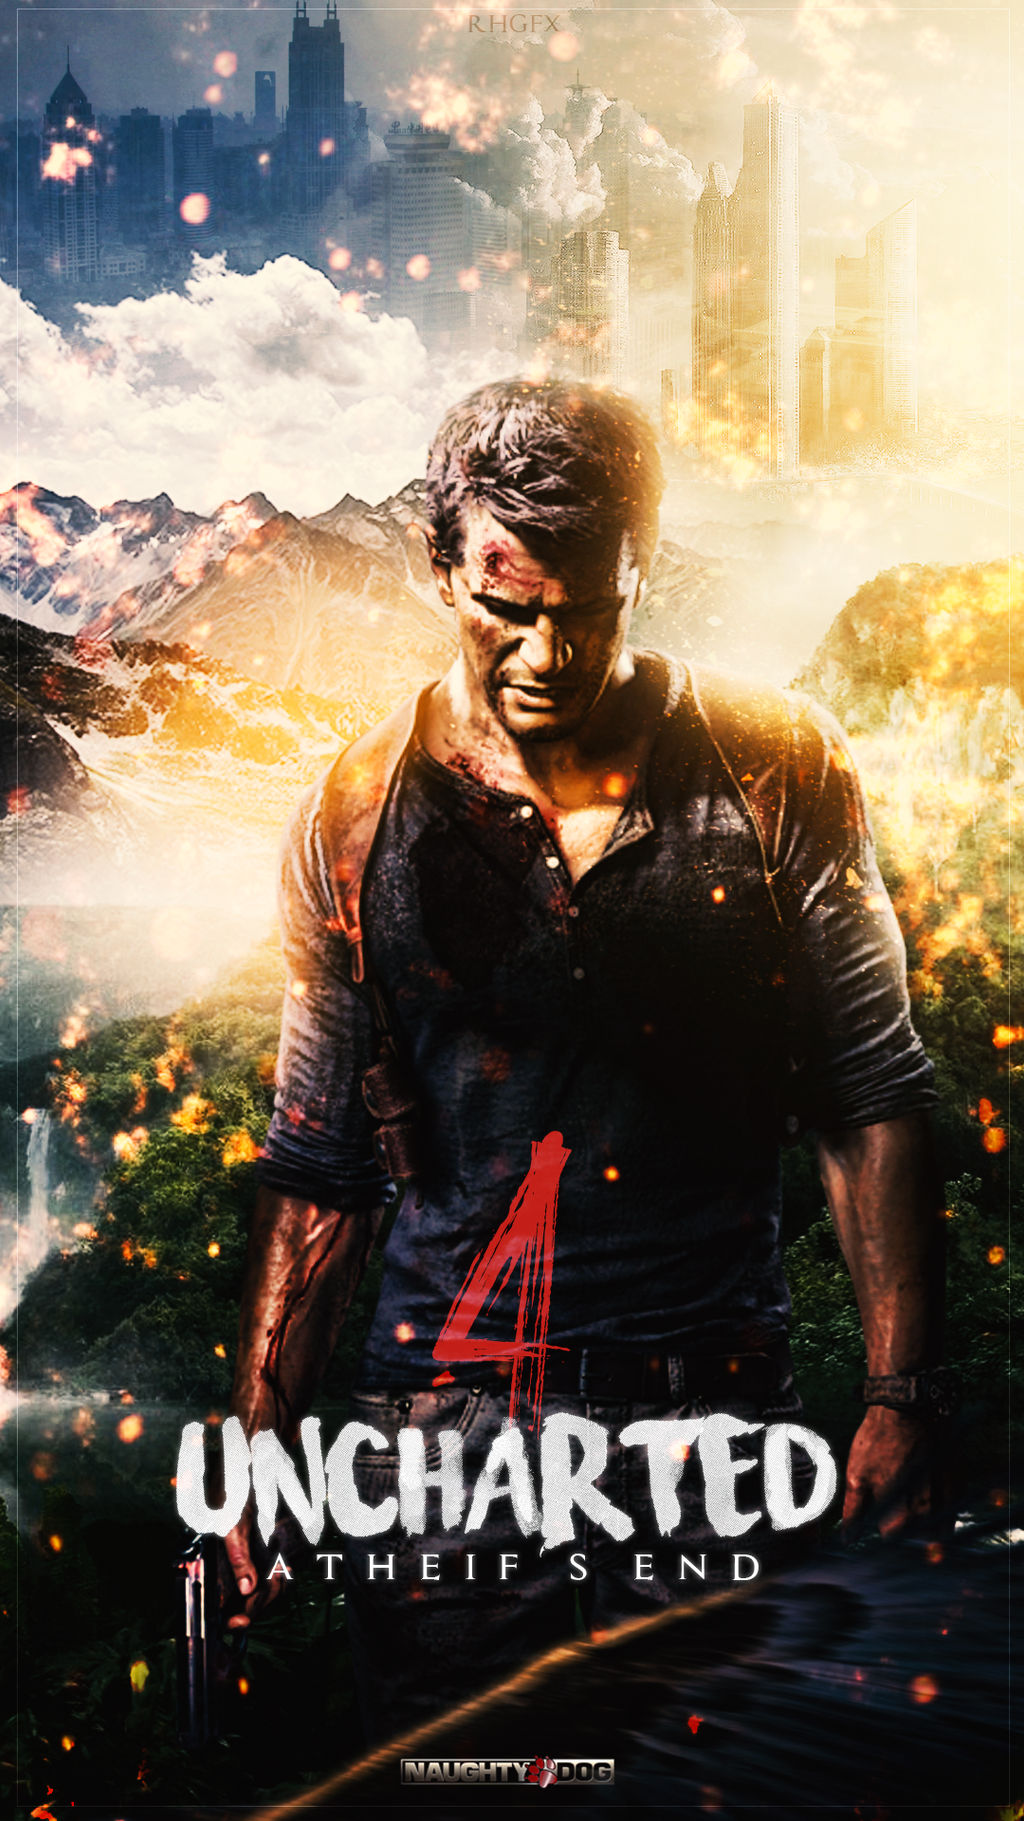 Uncharted 4 Wallpaper Rhgfx By Rhgfx2 On Deviantart